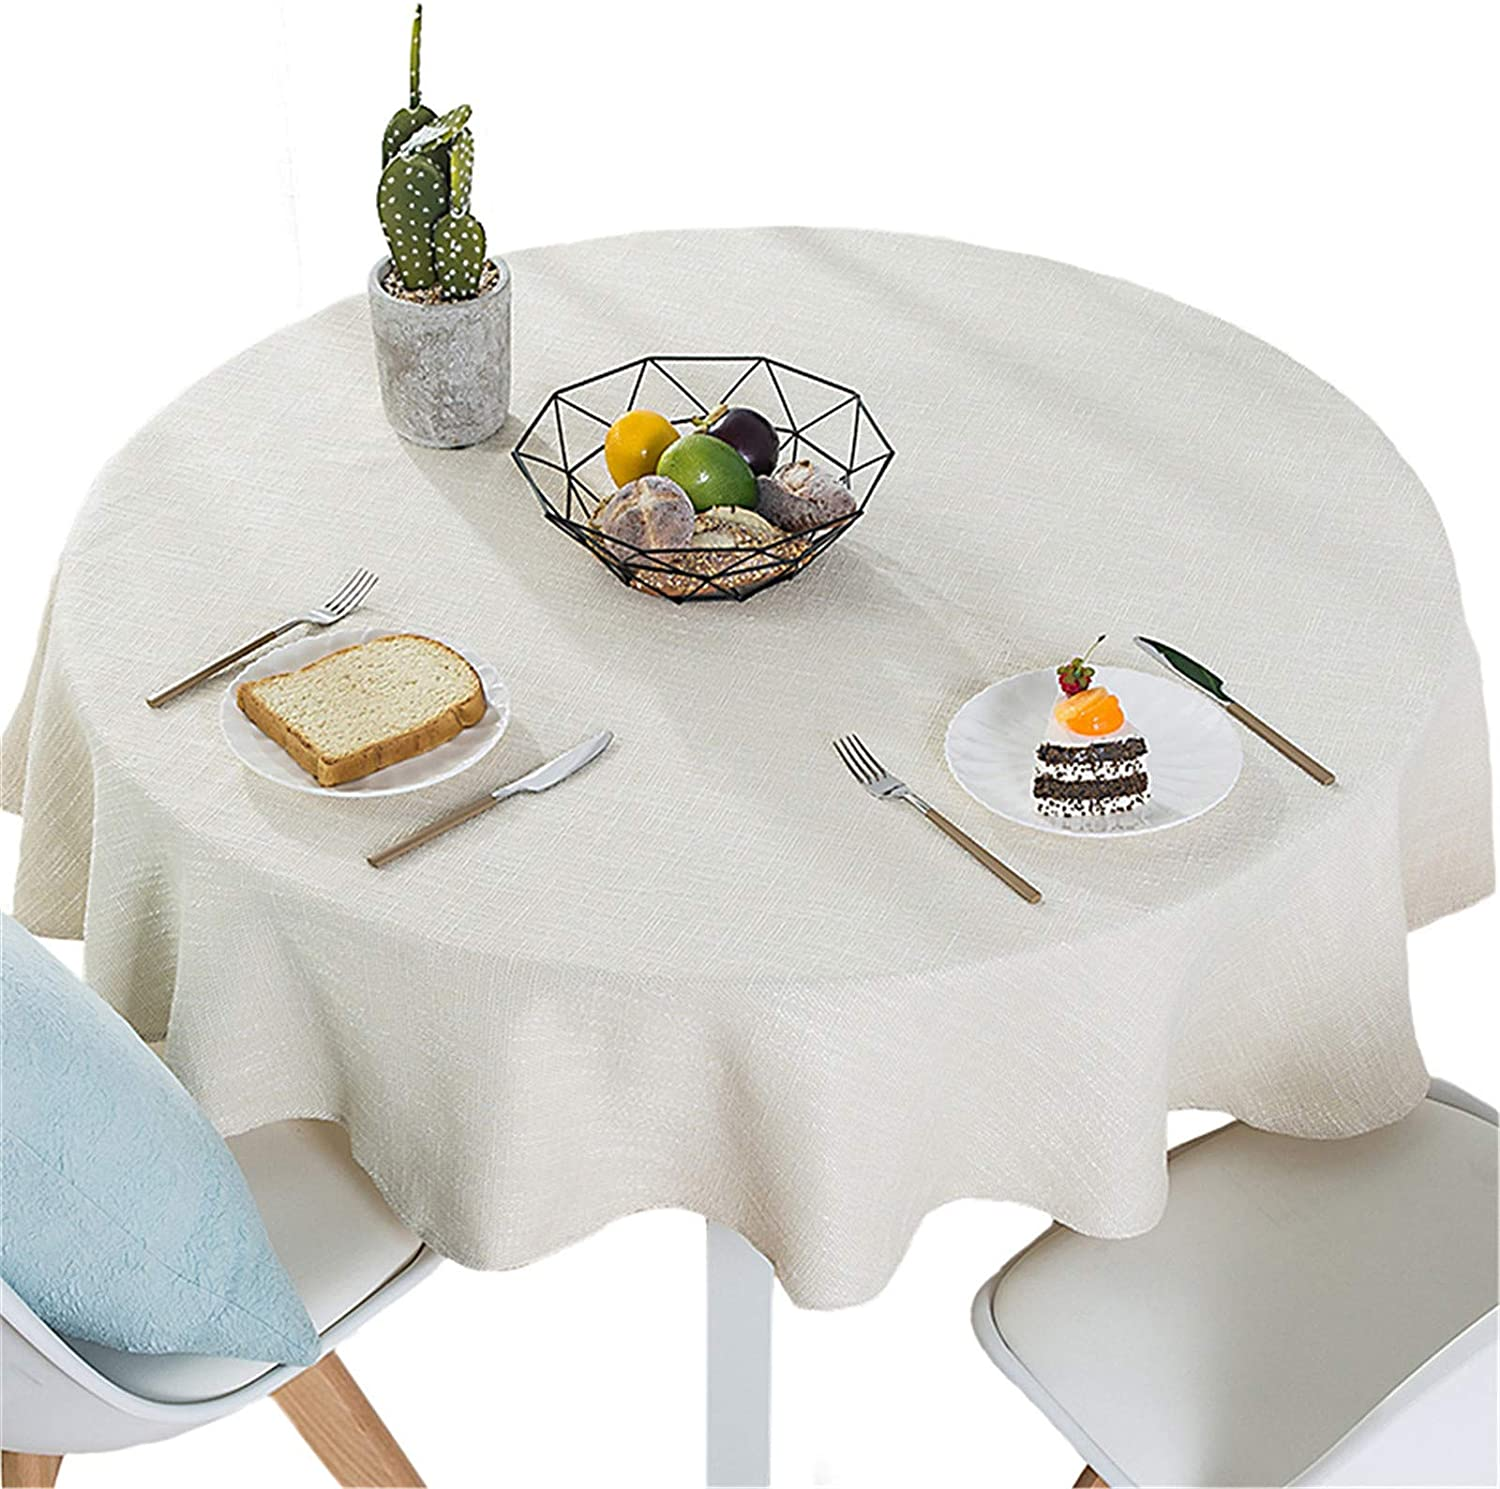 Bettery Home Cotton Linen Solid Color Tablecloth Round Simple Style Table Cover for Kitchen Dining Tabletop Linen Decor (Off White, Round - 70 Inch)